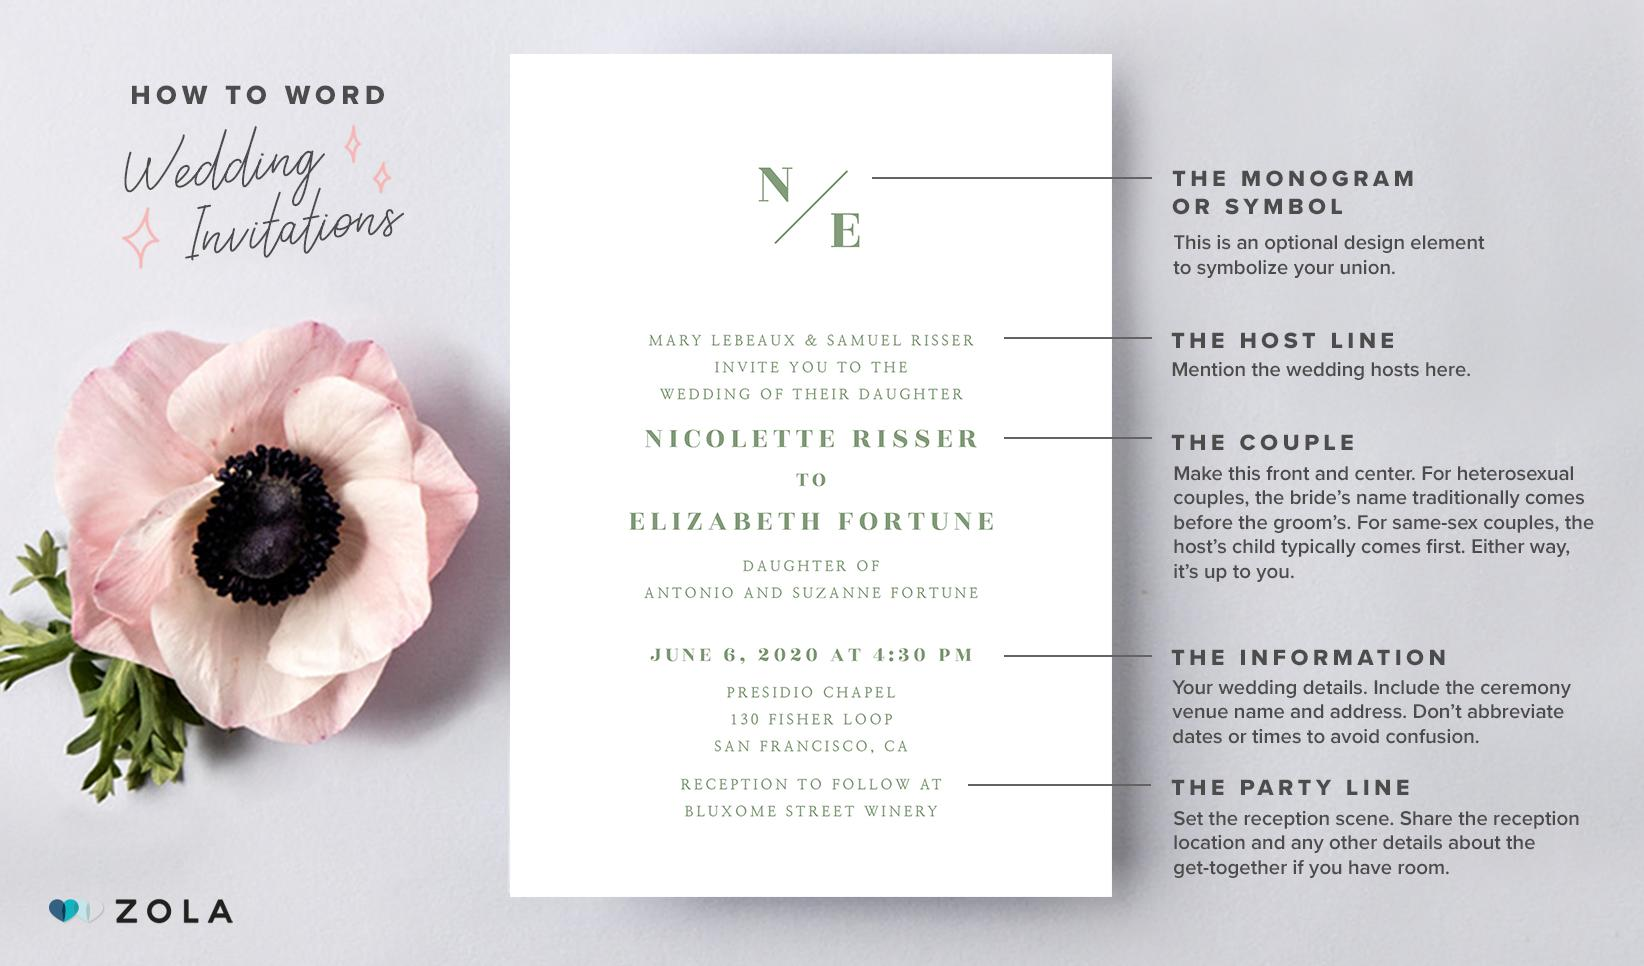 Wedding Invitation Wording Etiquette.How To Word Wedding Invitations Zola Expert Wedding Advice